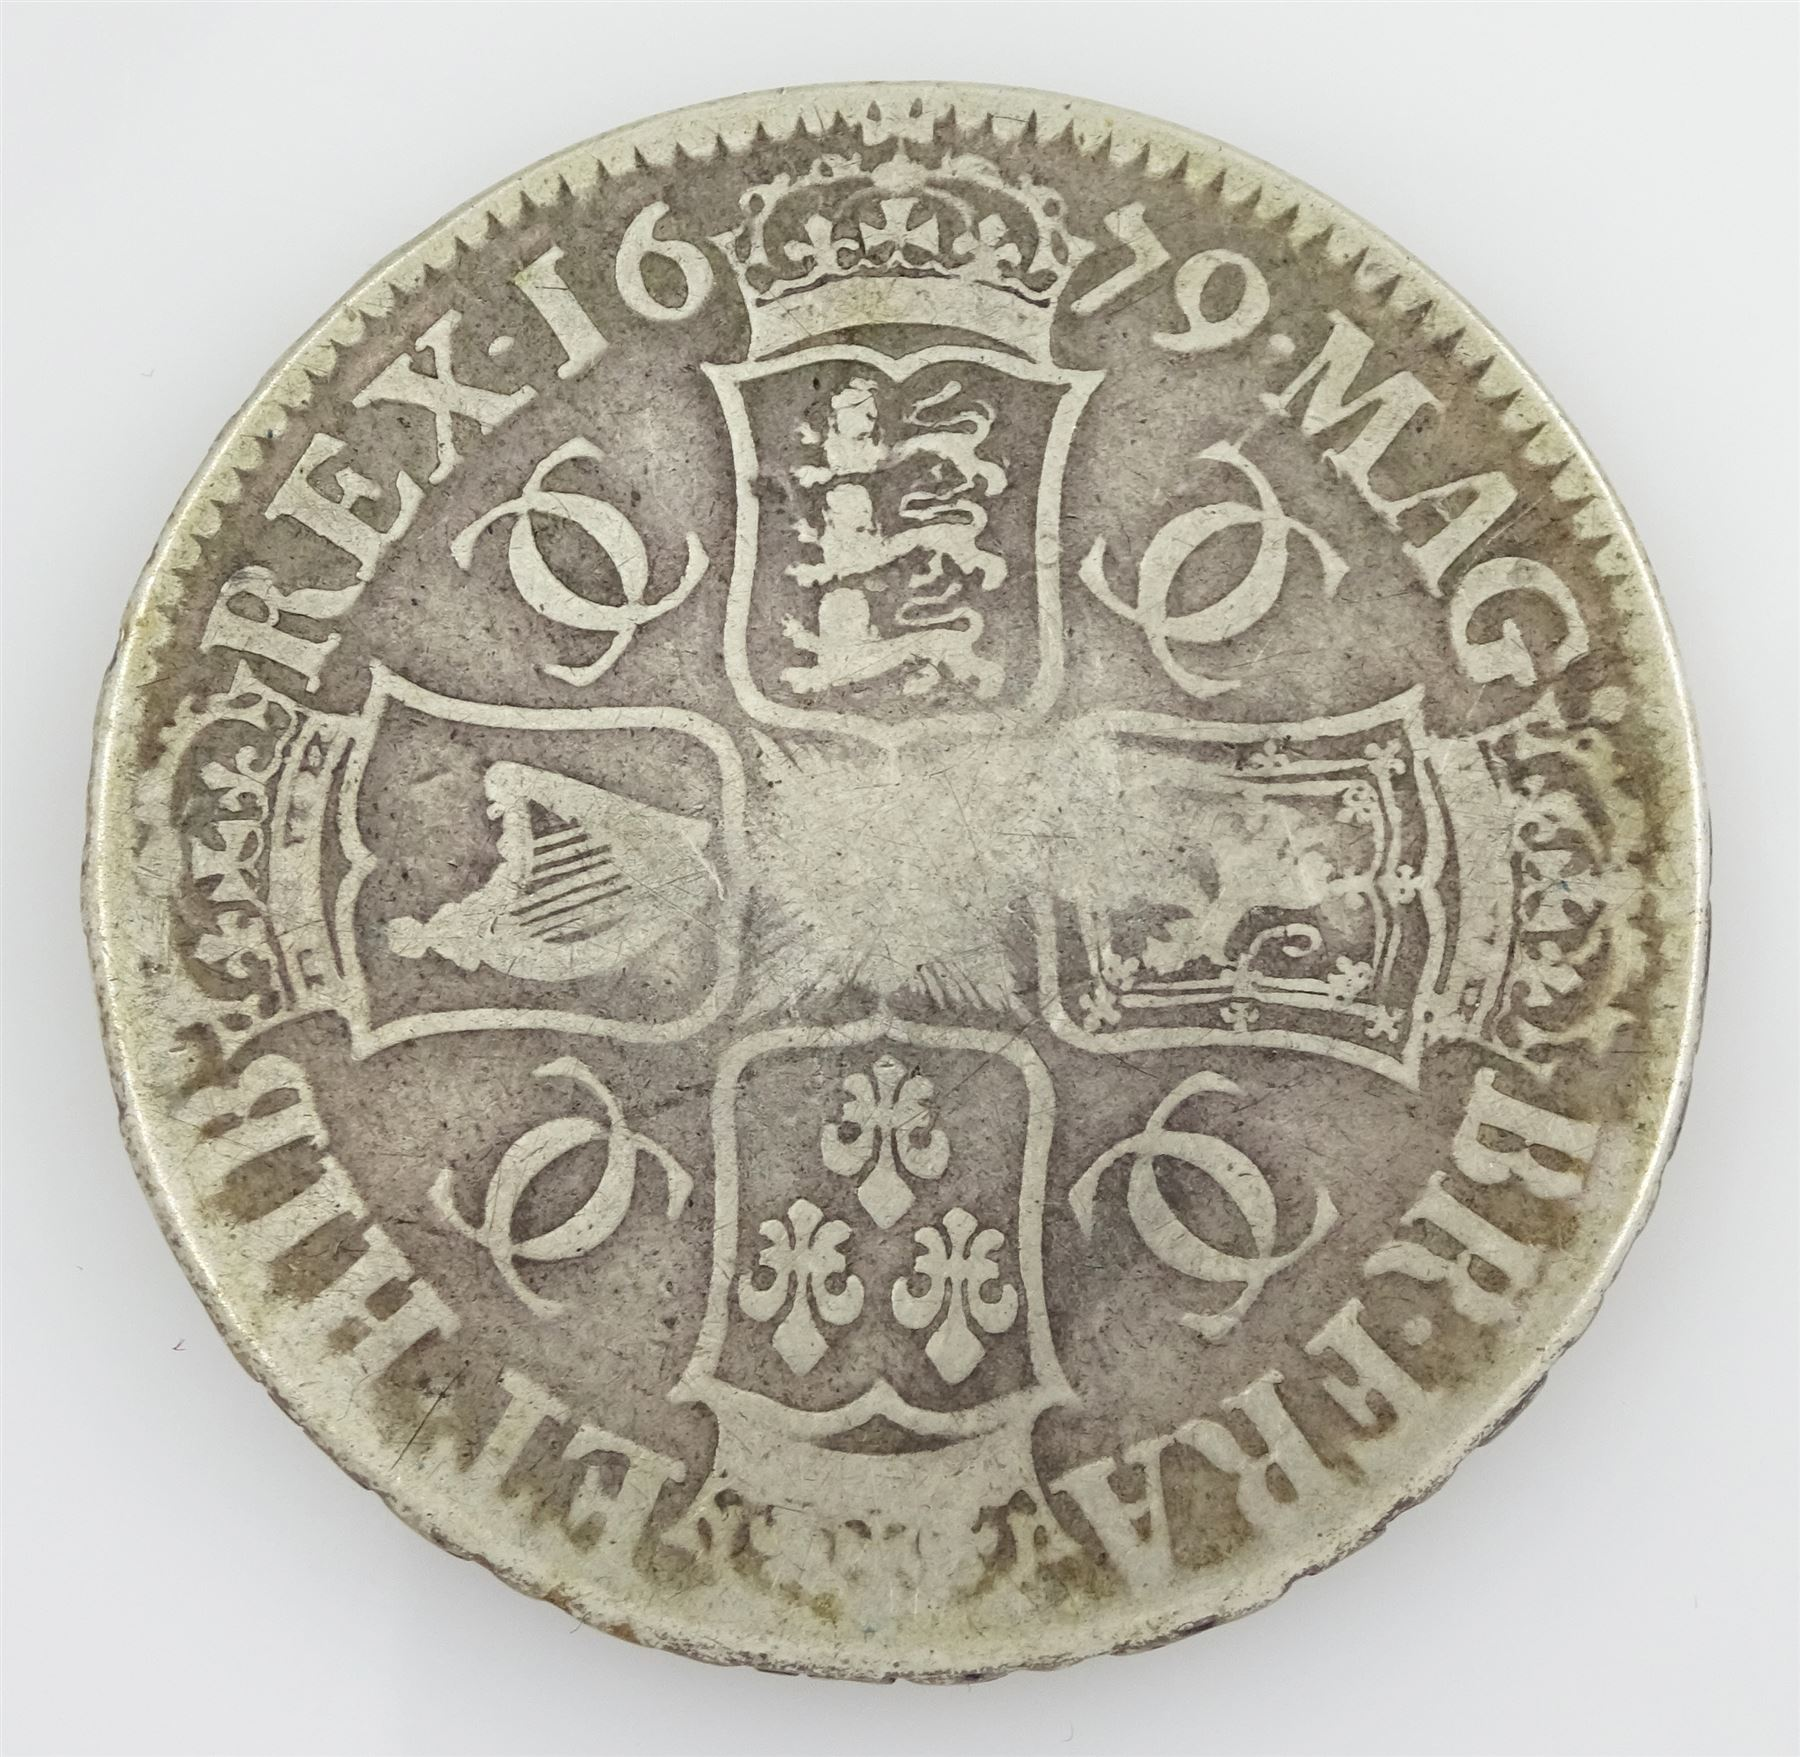 King Charles II 1679 crown coin - Image 2 of 3